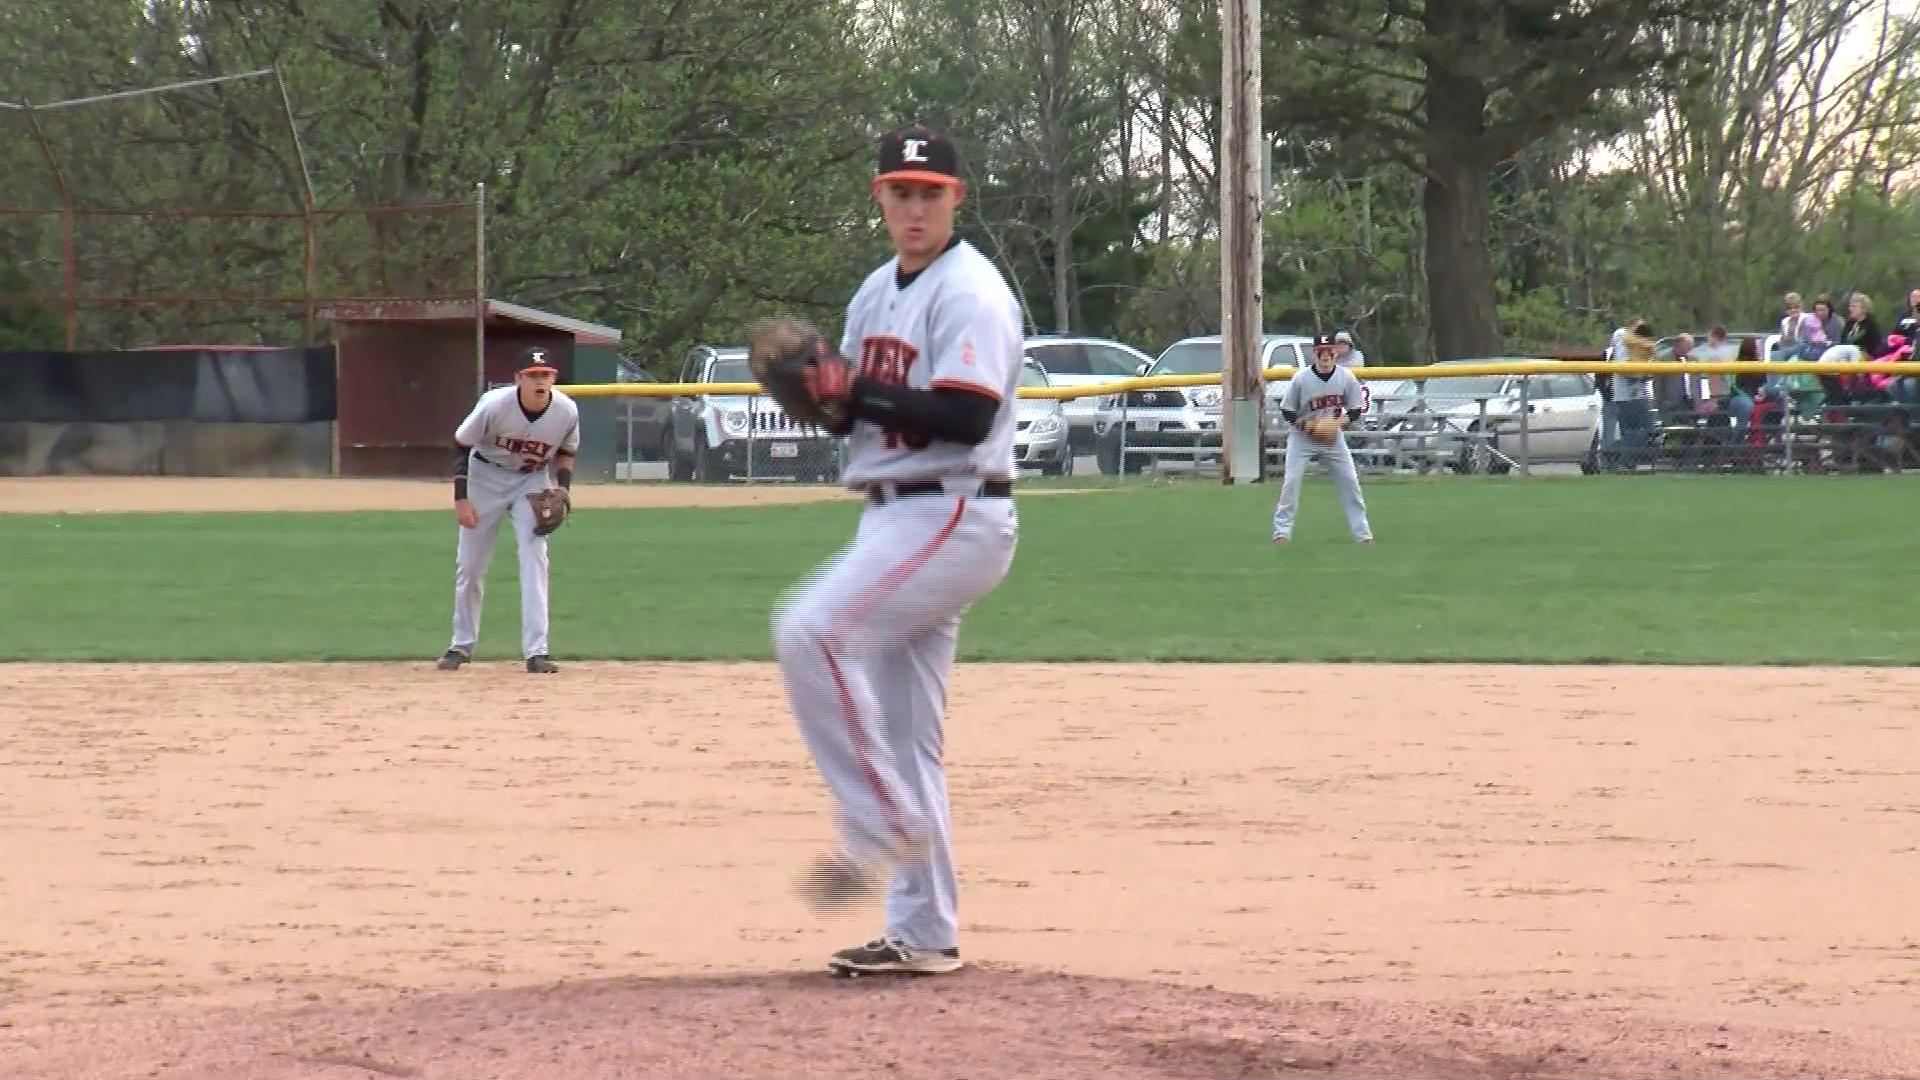 4.22.17 Video- Barnesville advances to 3A title game over Linsly- high school baseball